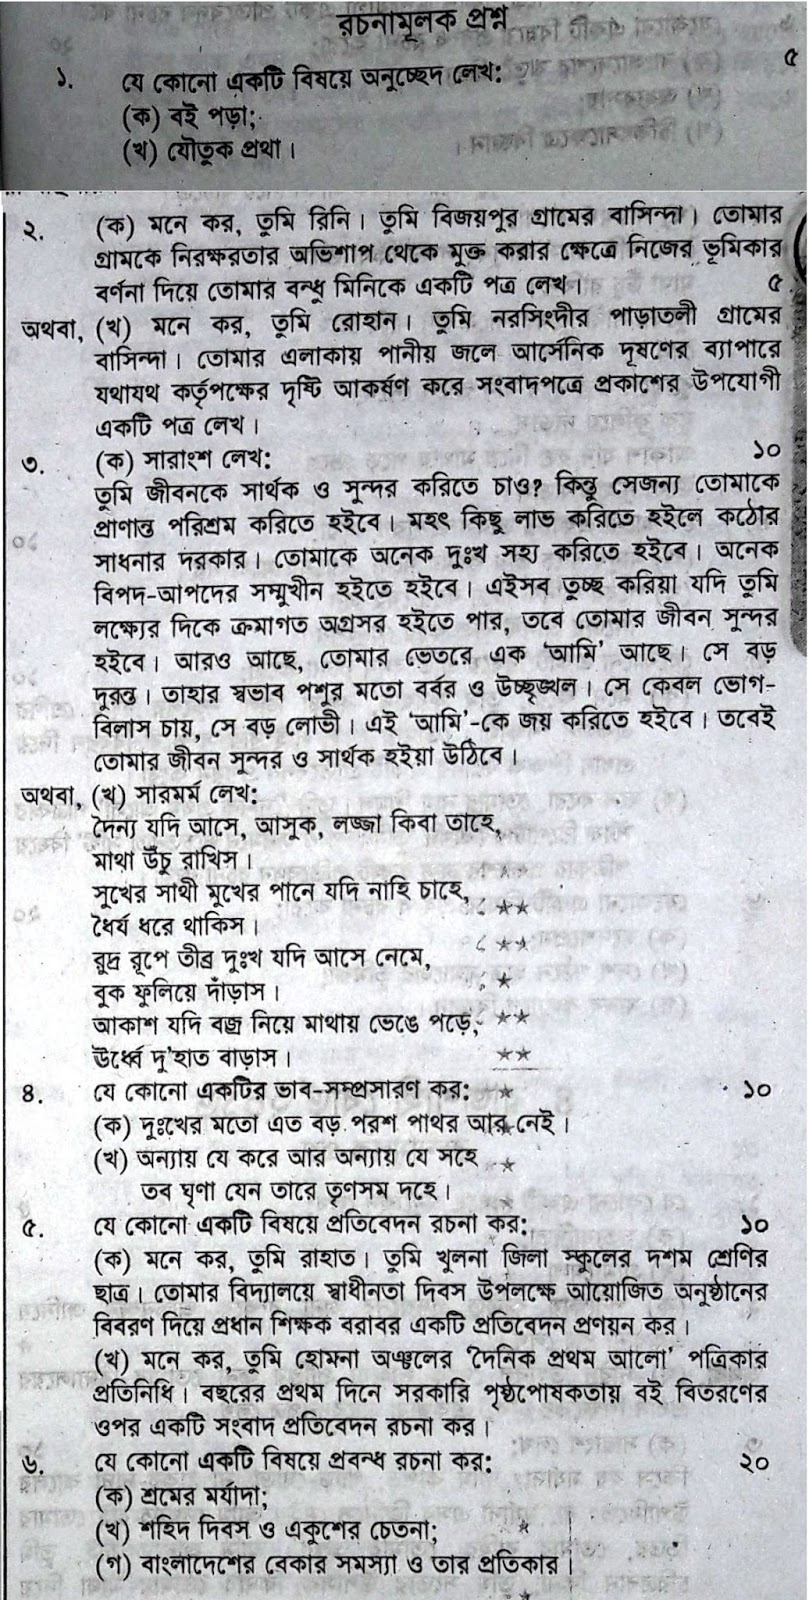 SSC Bangla 2nd Paper Model Question - 02